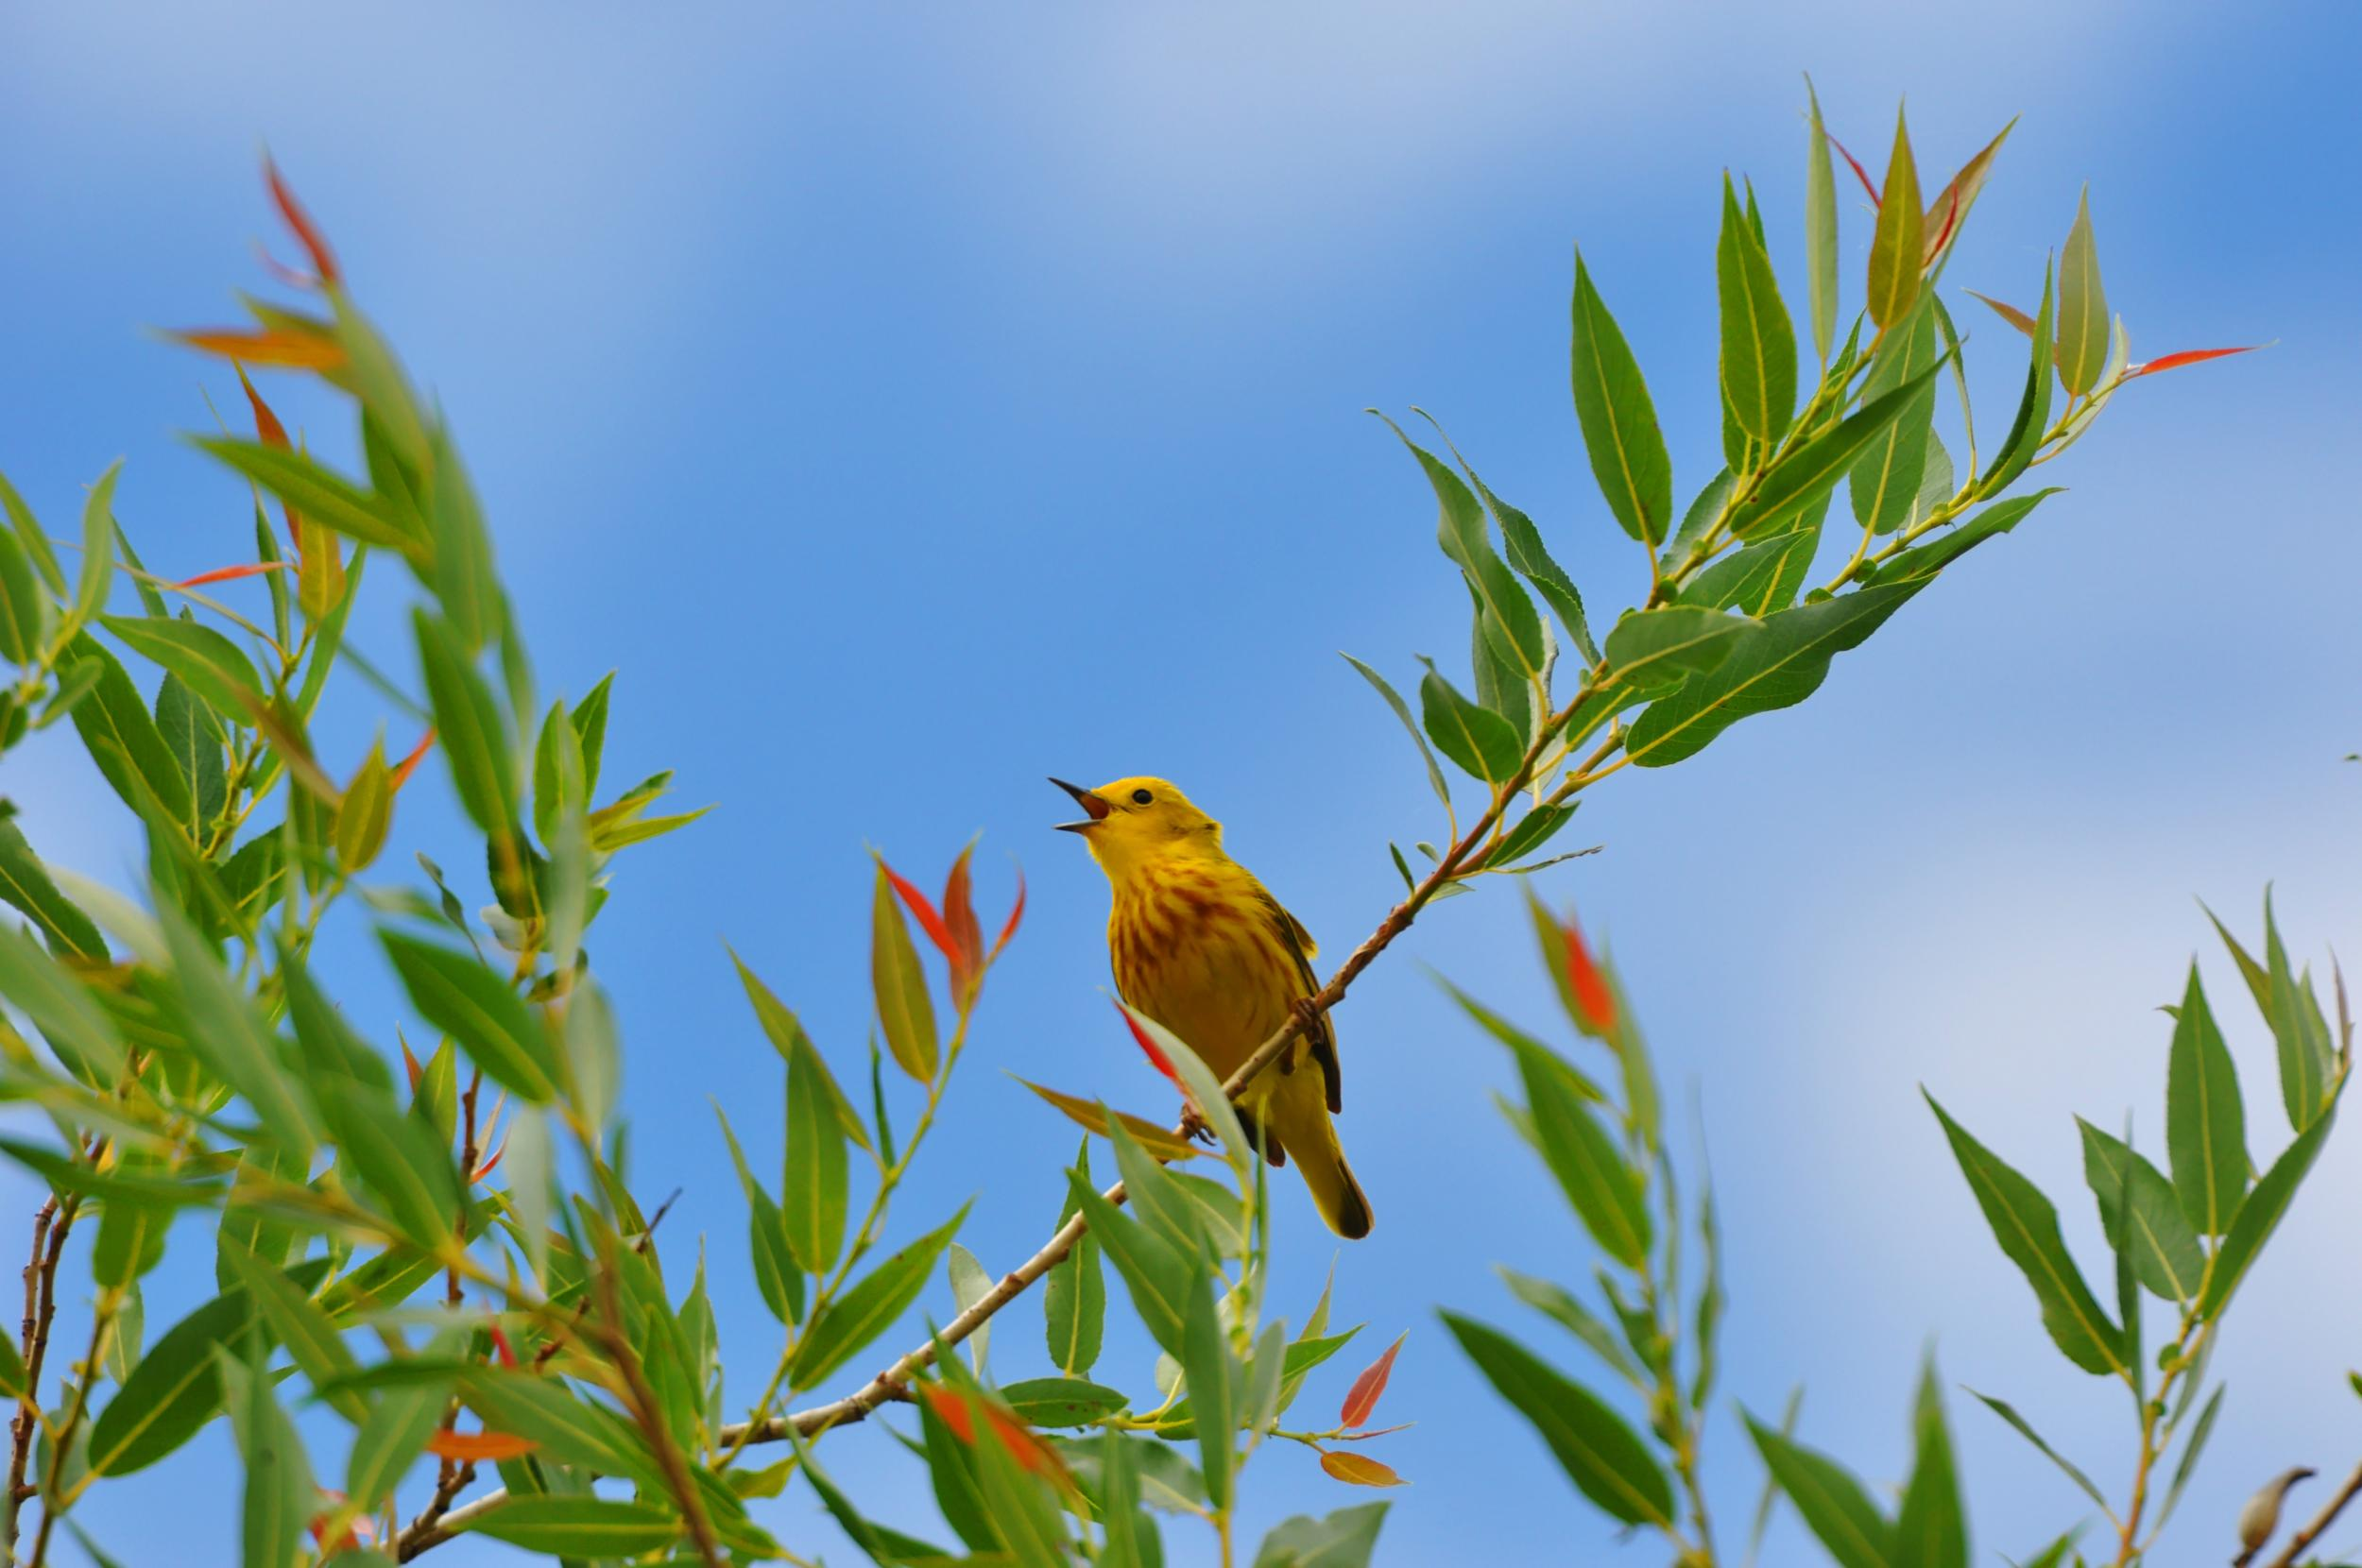 Yellow Warbler in a tree top